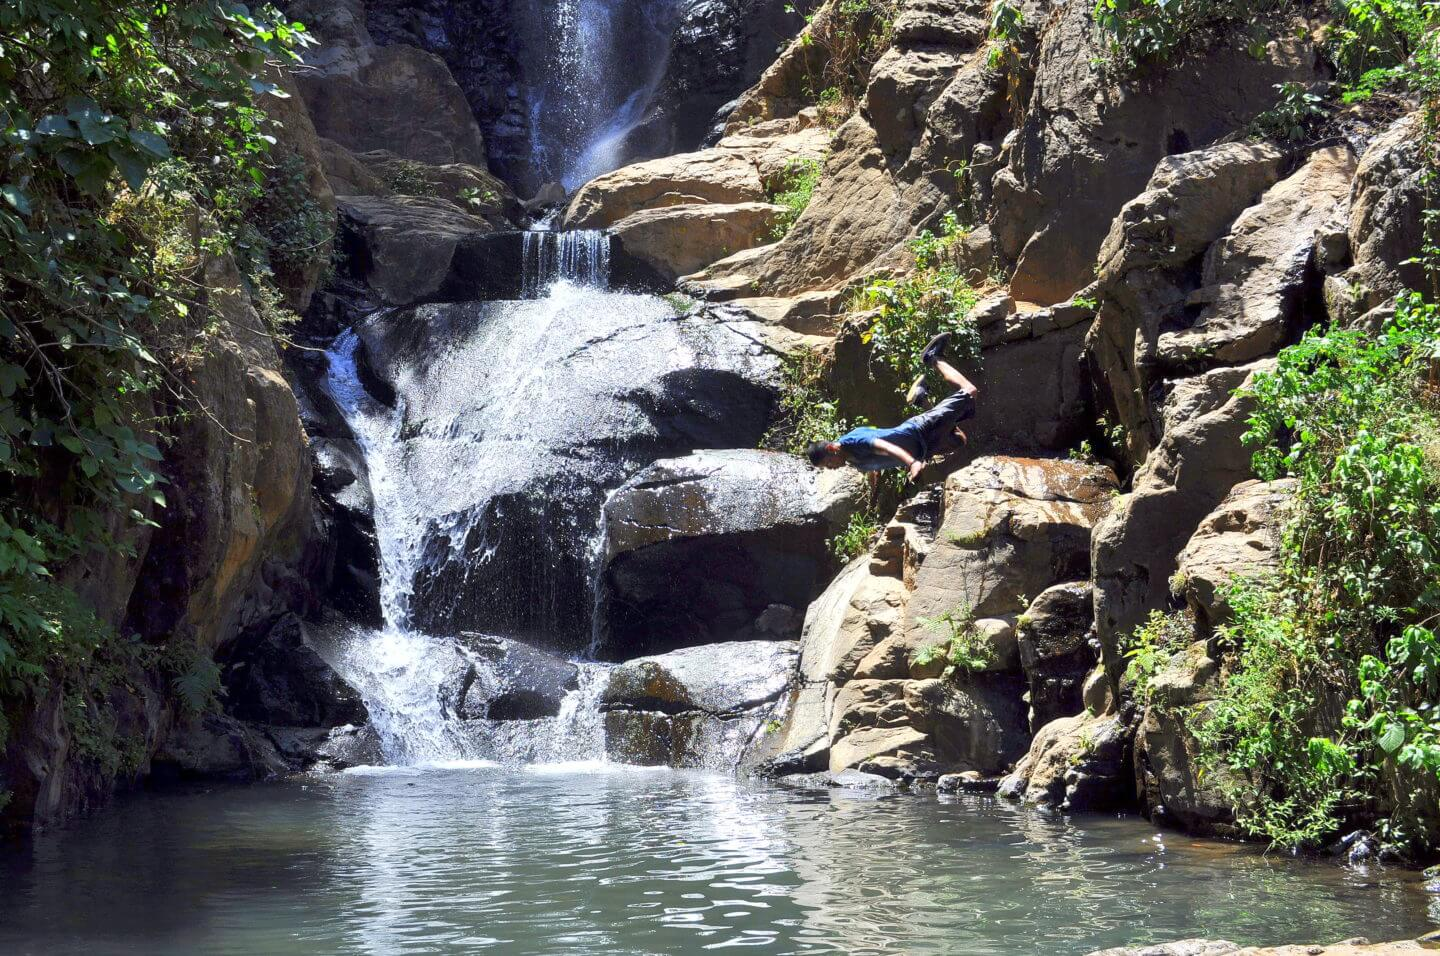 Los Azules Waterfalls in Tequila, Jalisco